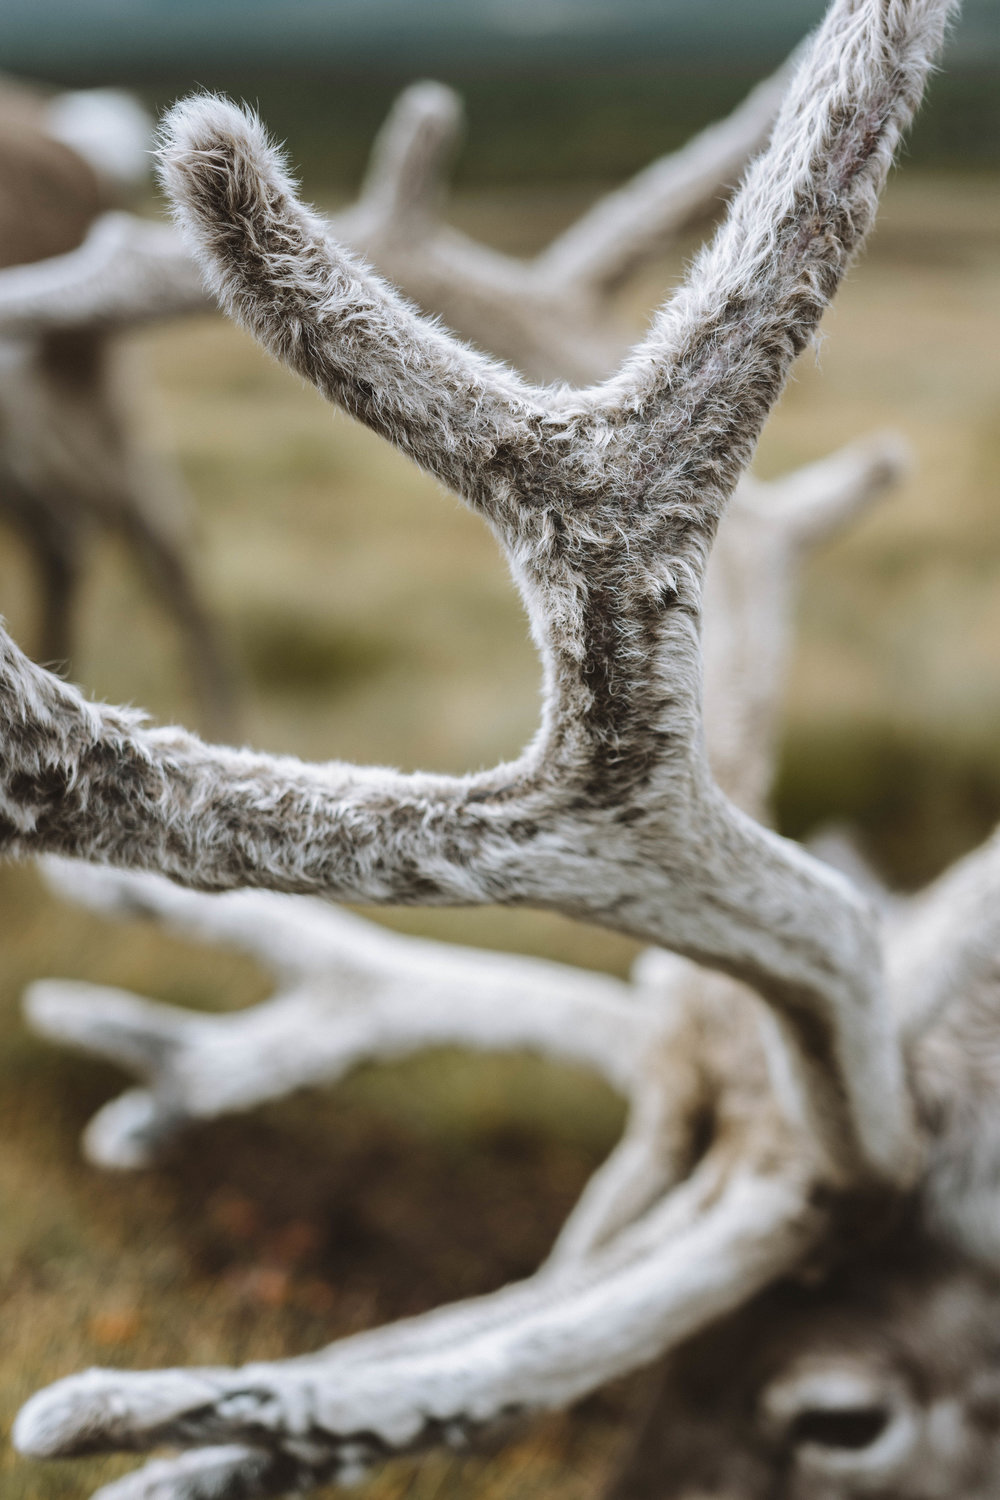 The furry texture of the antlers.